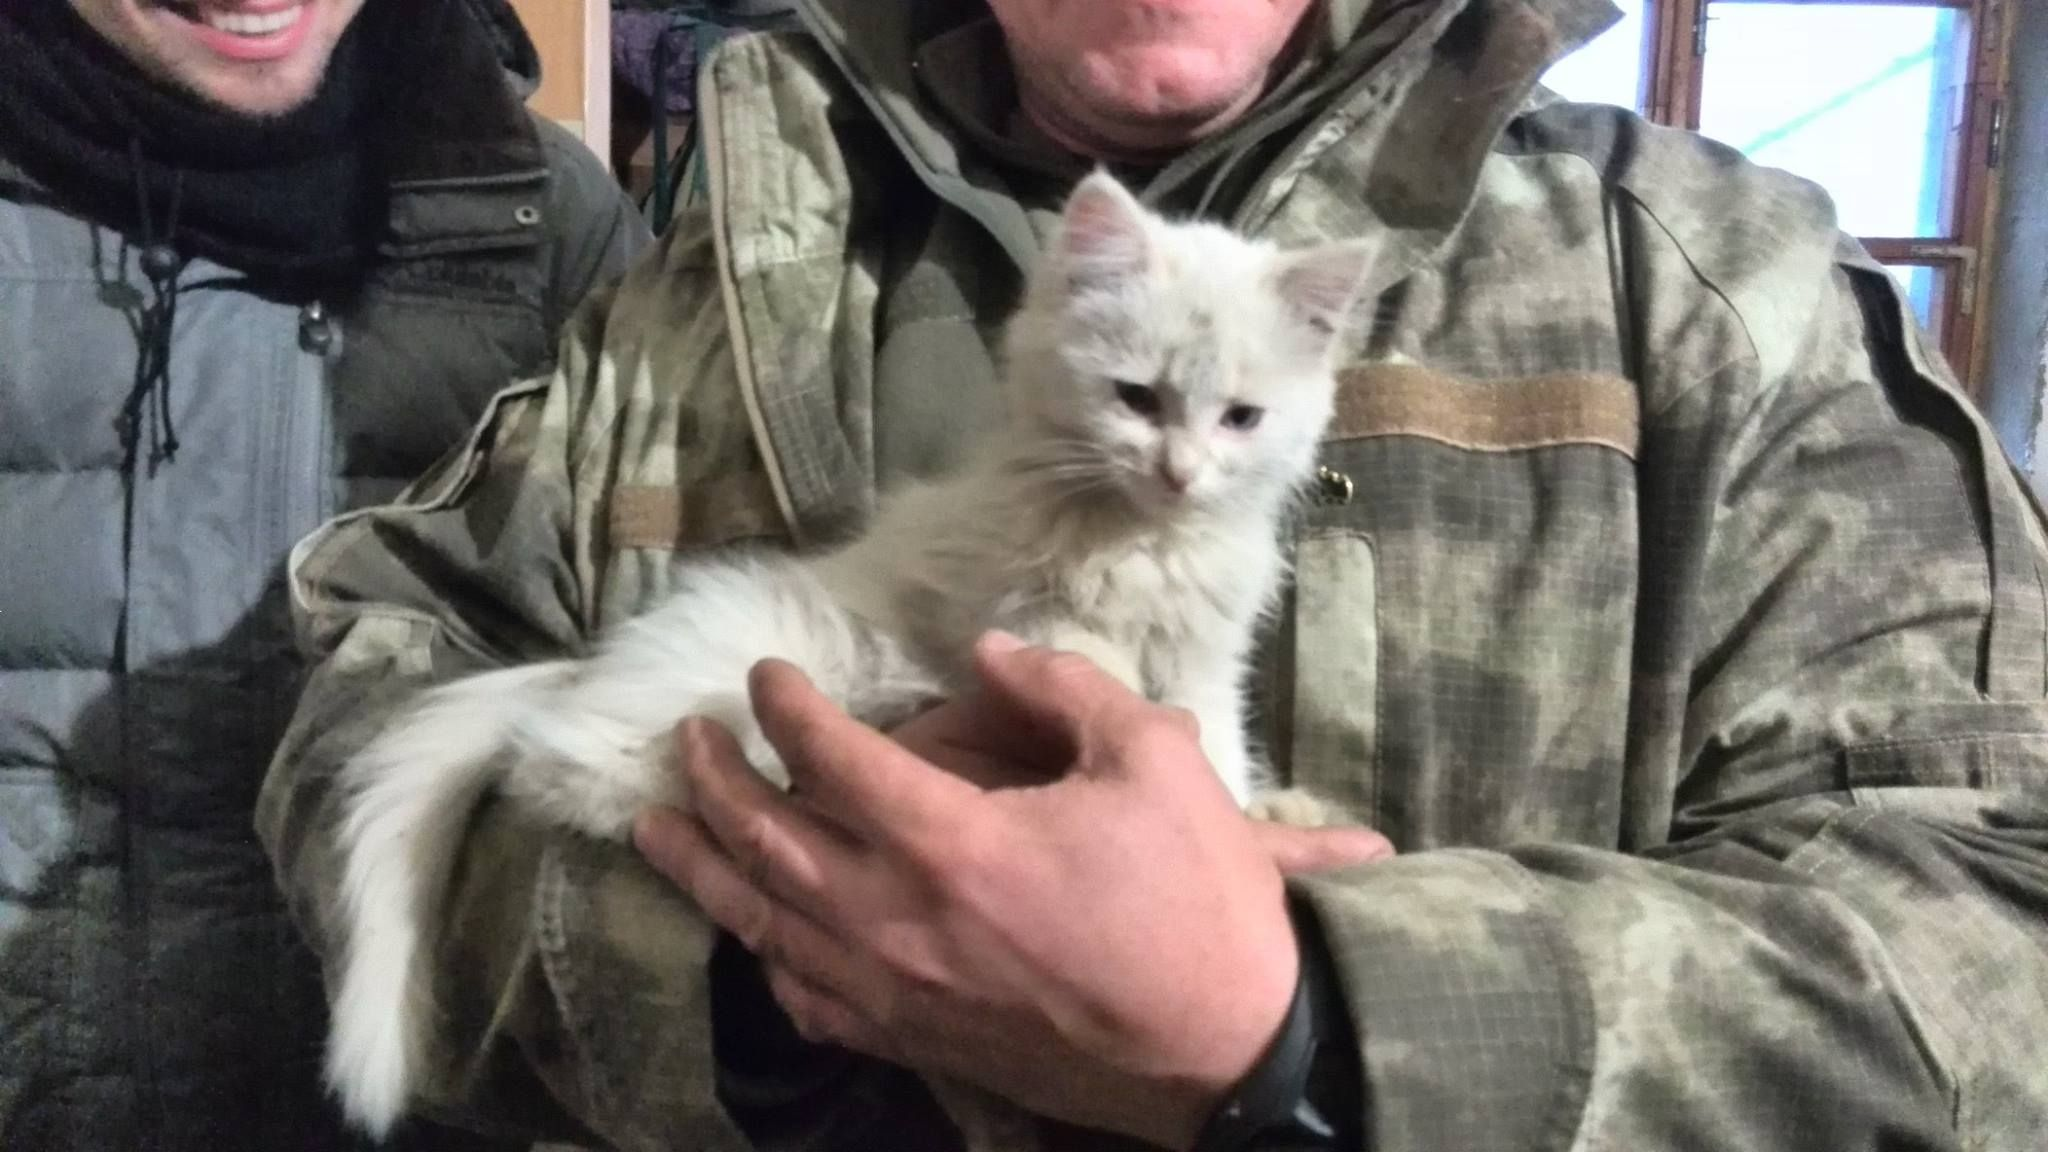 20 things you didnt know about military cats cat pics